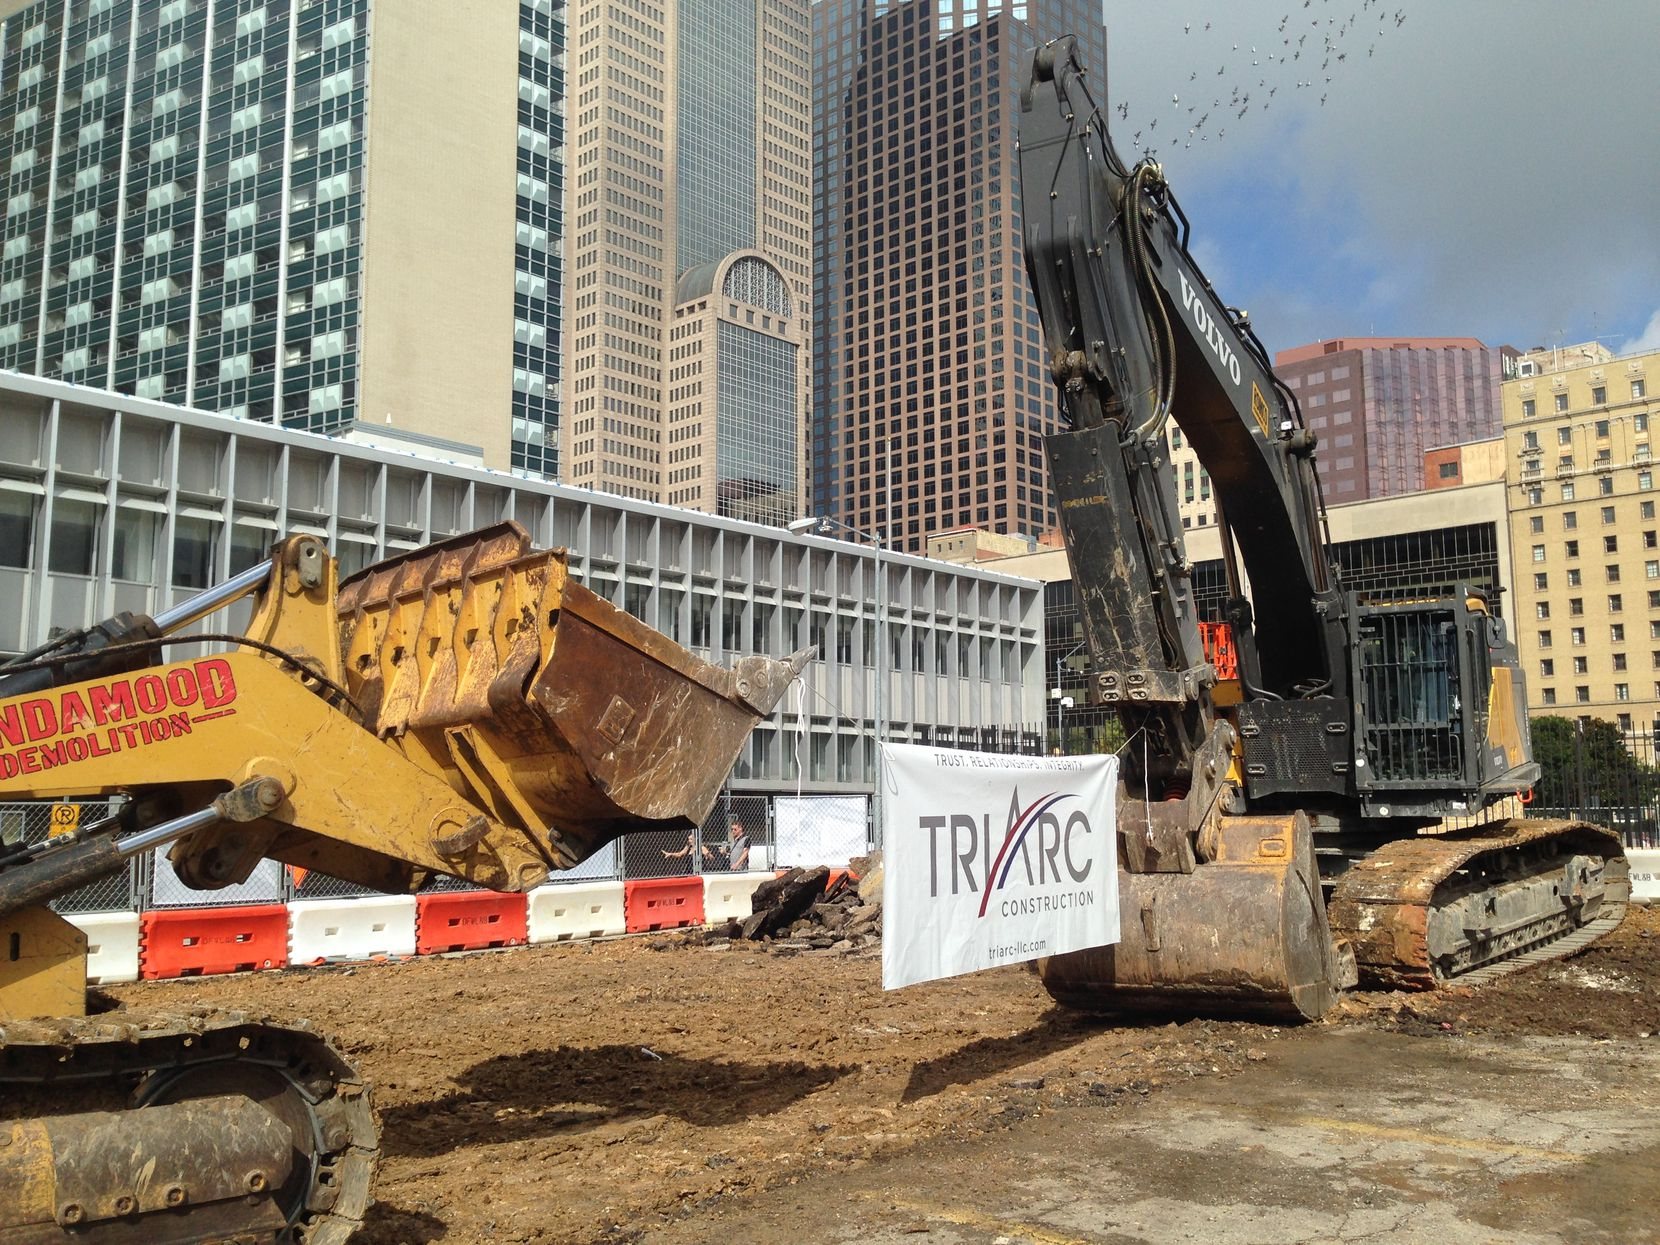 Construction has started on a garage, retail and residential building next to the Statler project on Harwood Street.